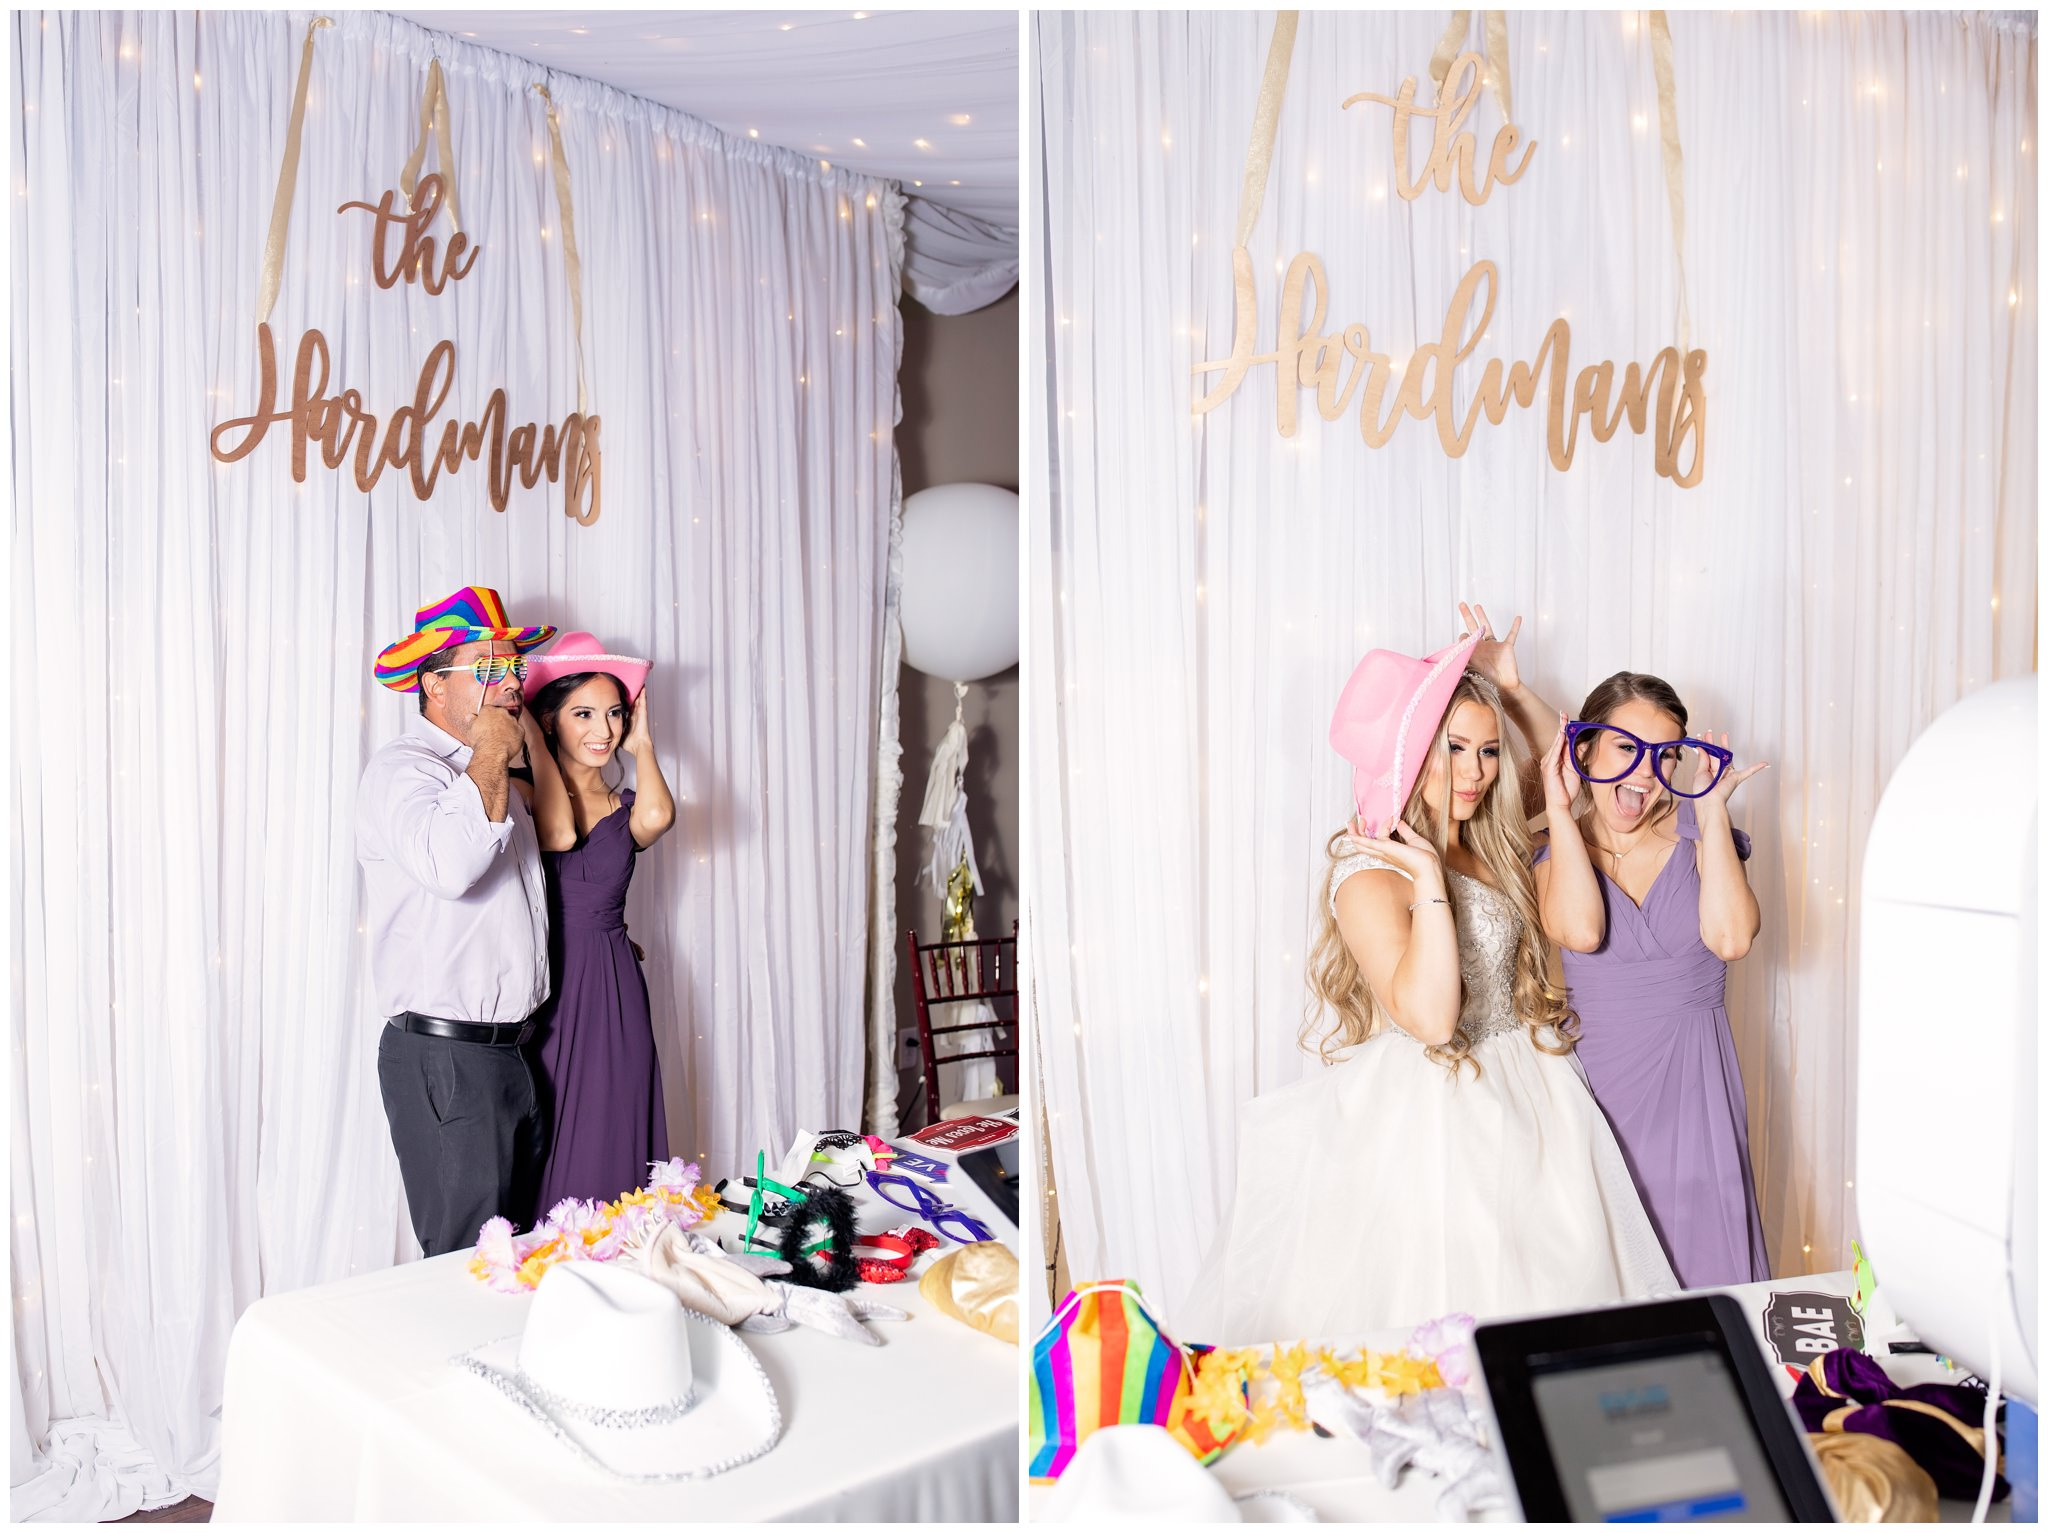 Photo booth pictures of bride and groom one above entertainment